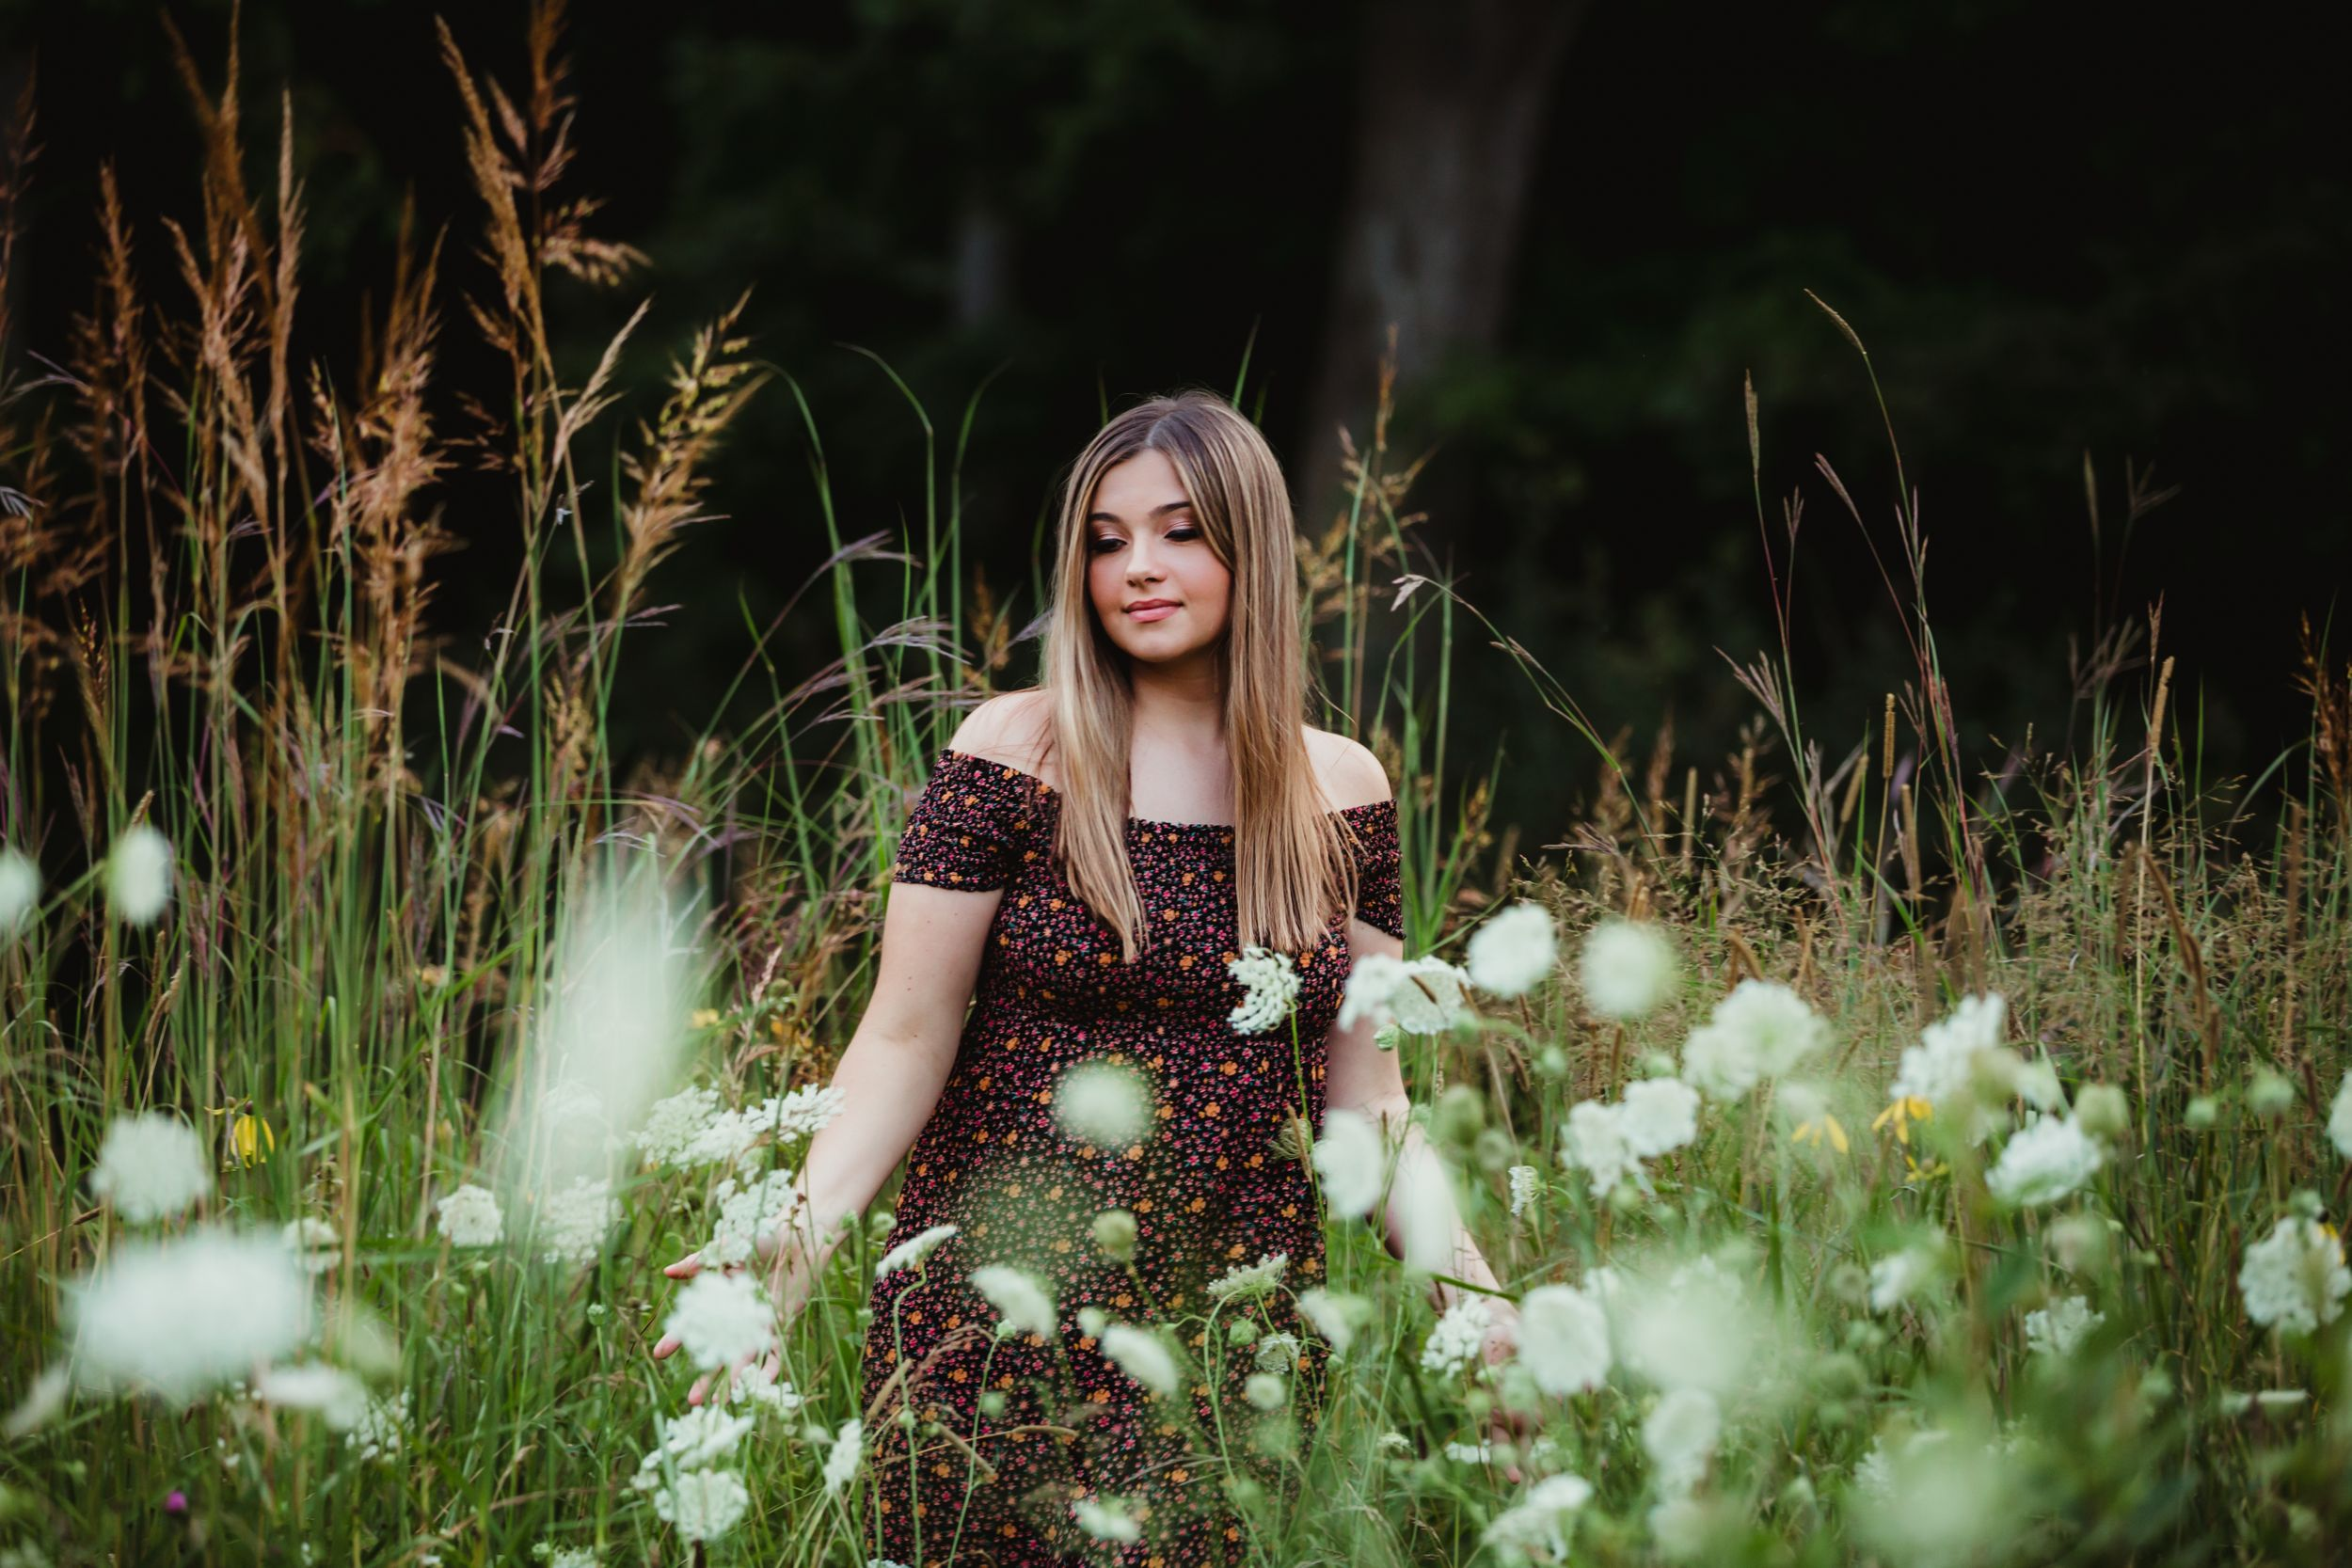 High school senior girl walking through a field of long grass and flowers. She is wearing a dark dress with tiny flowers